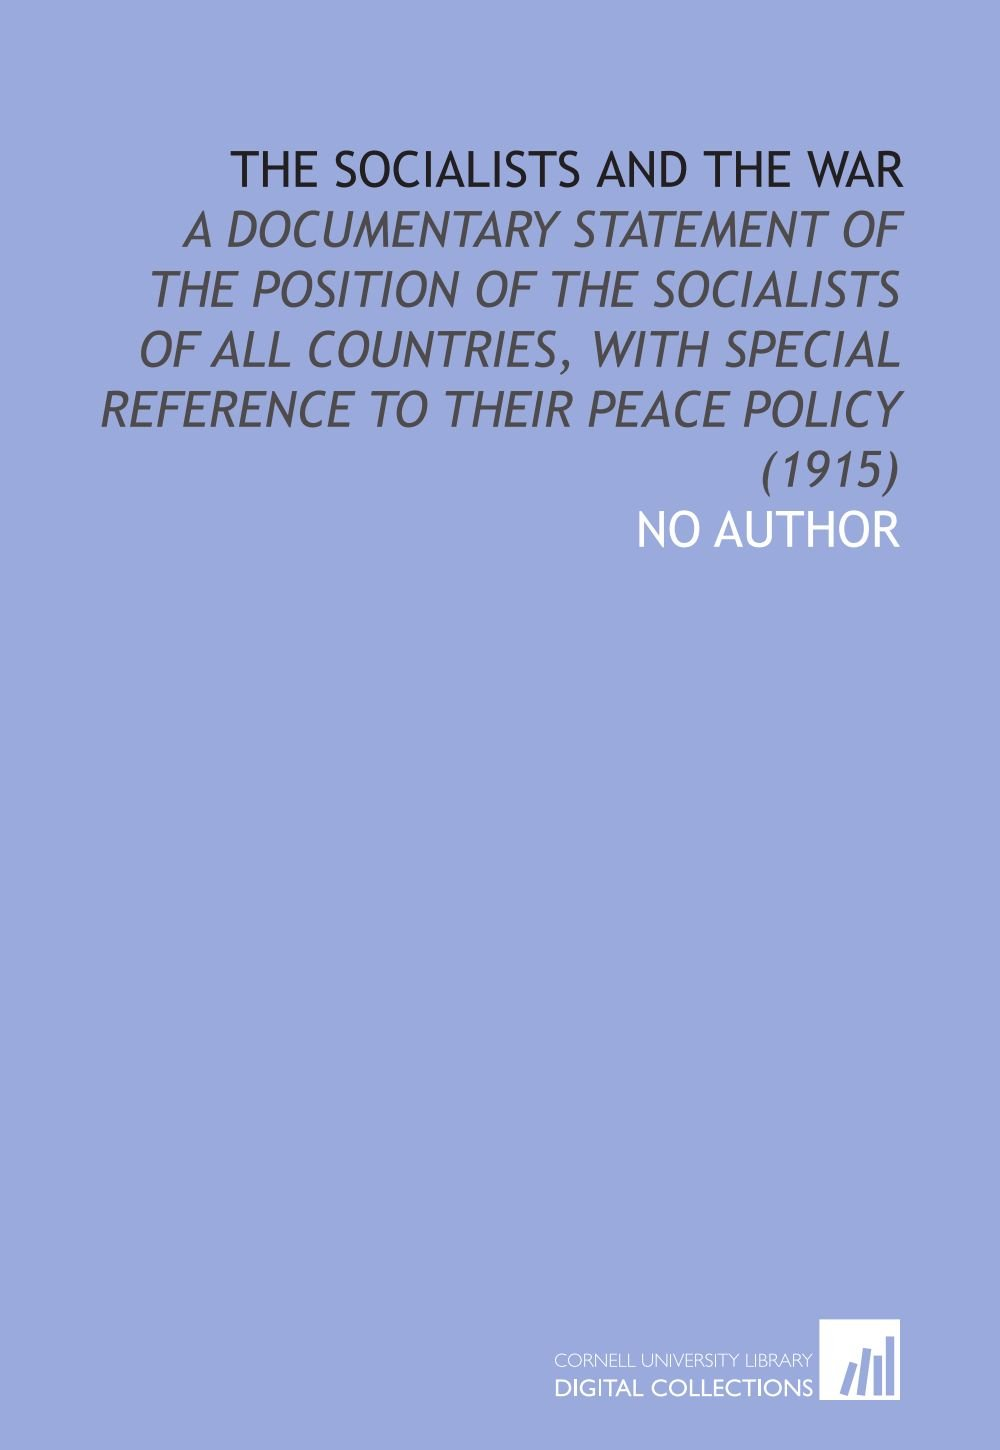 The Socialists and the War: A Documentary Statement of the Position of the Socialists of All Countries, With Special Reference to Their Peace Policy (1915) pdf